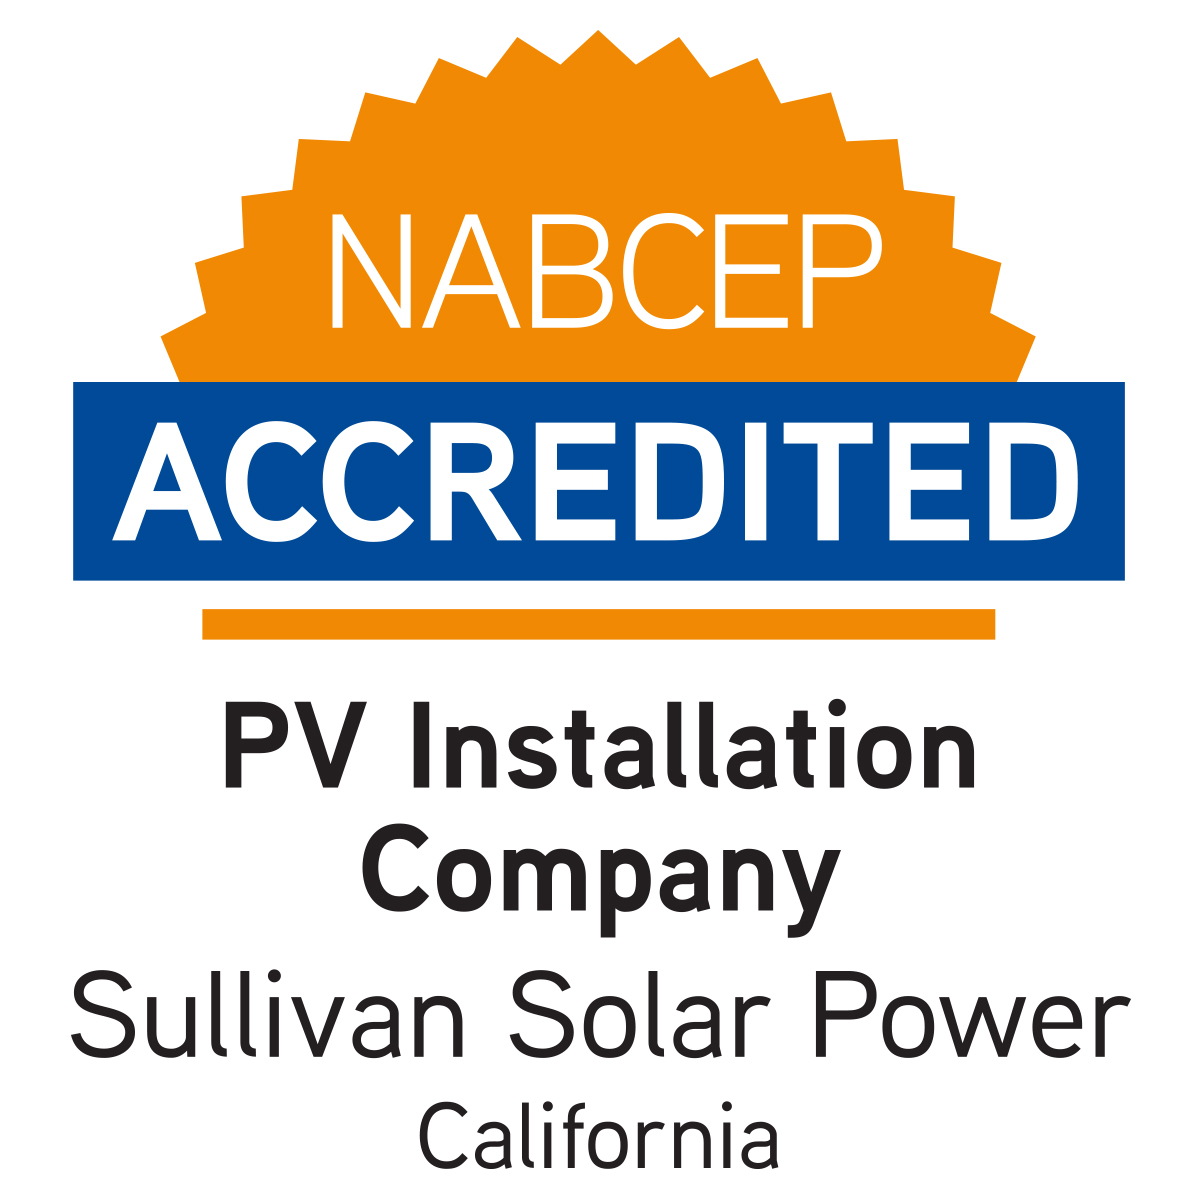 Sullivan Solar Power First And Only Professionally Accredited Solar